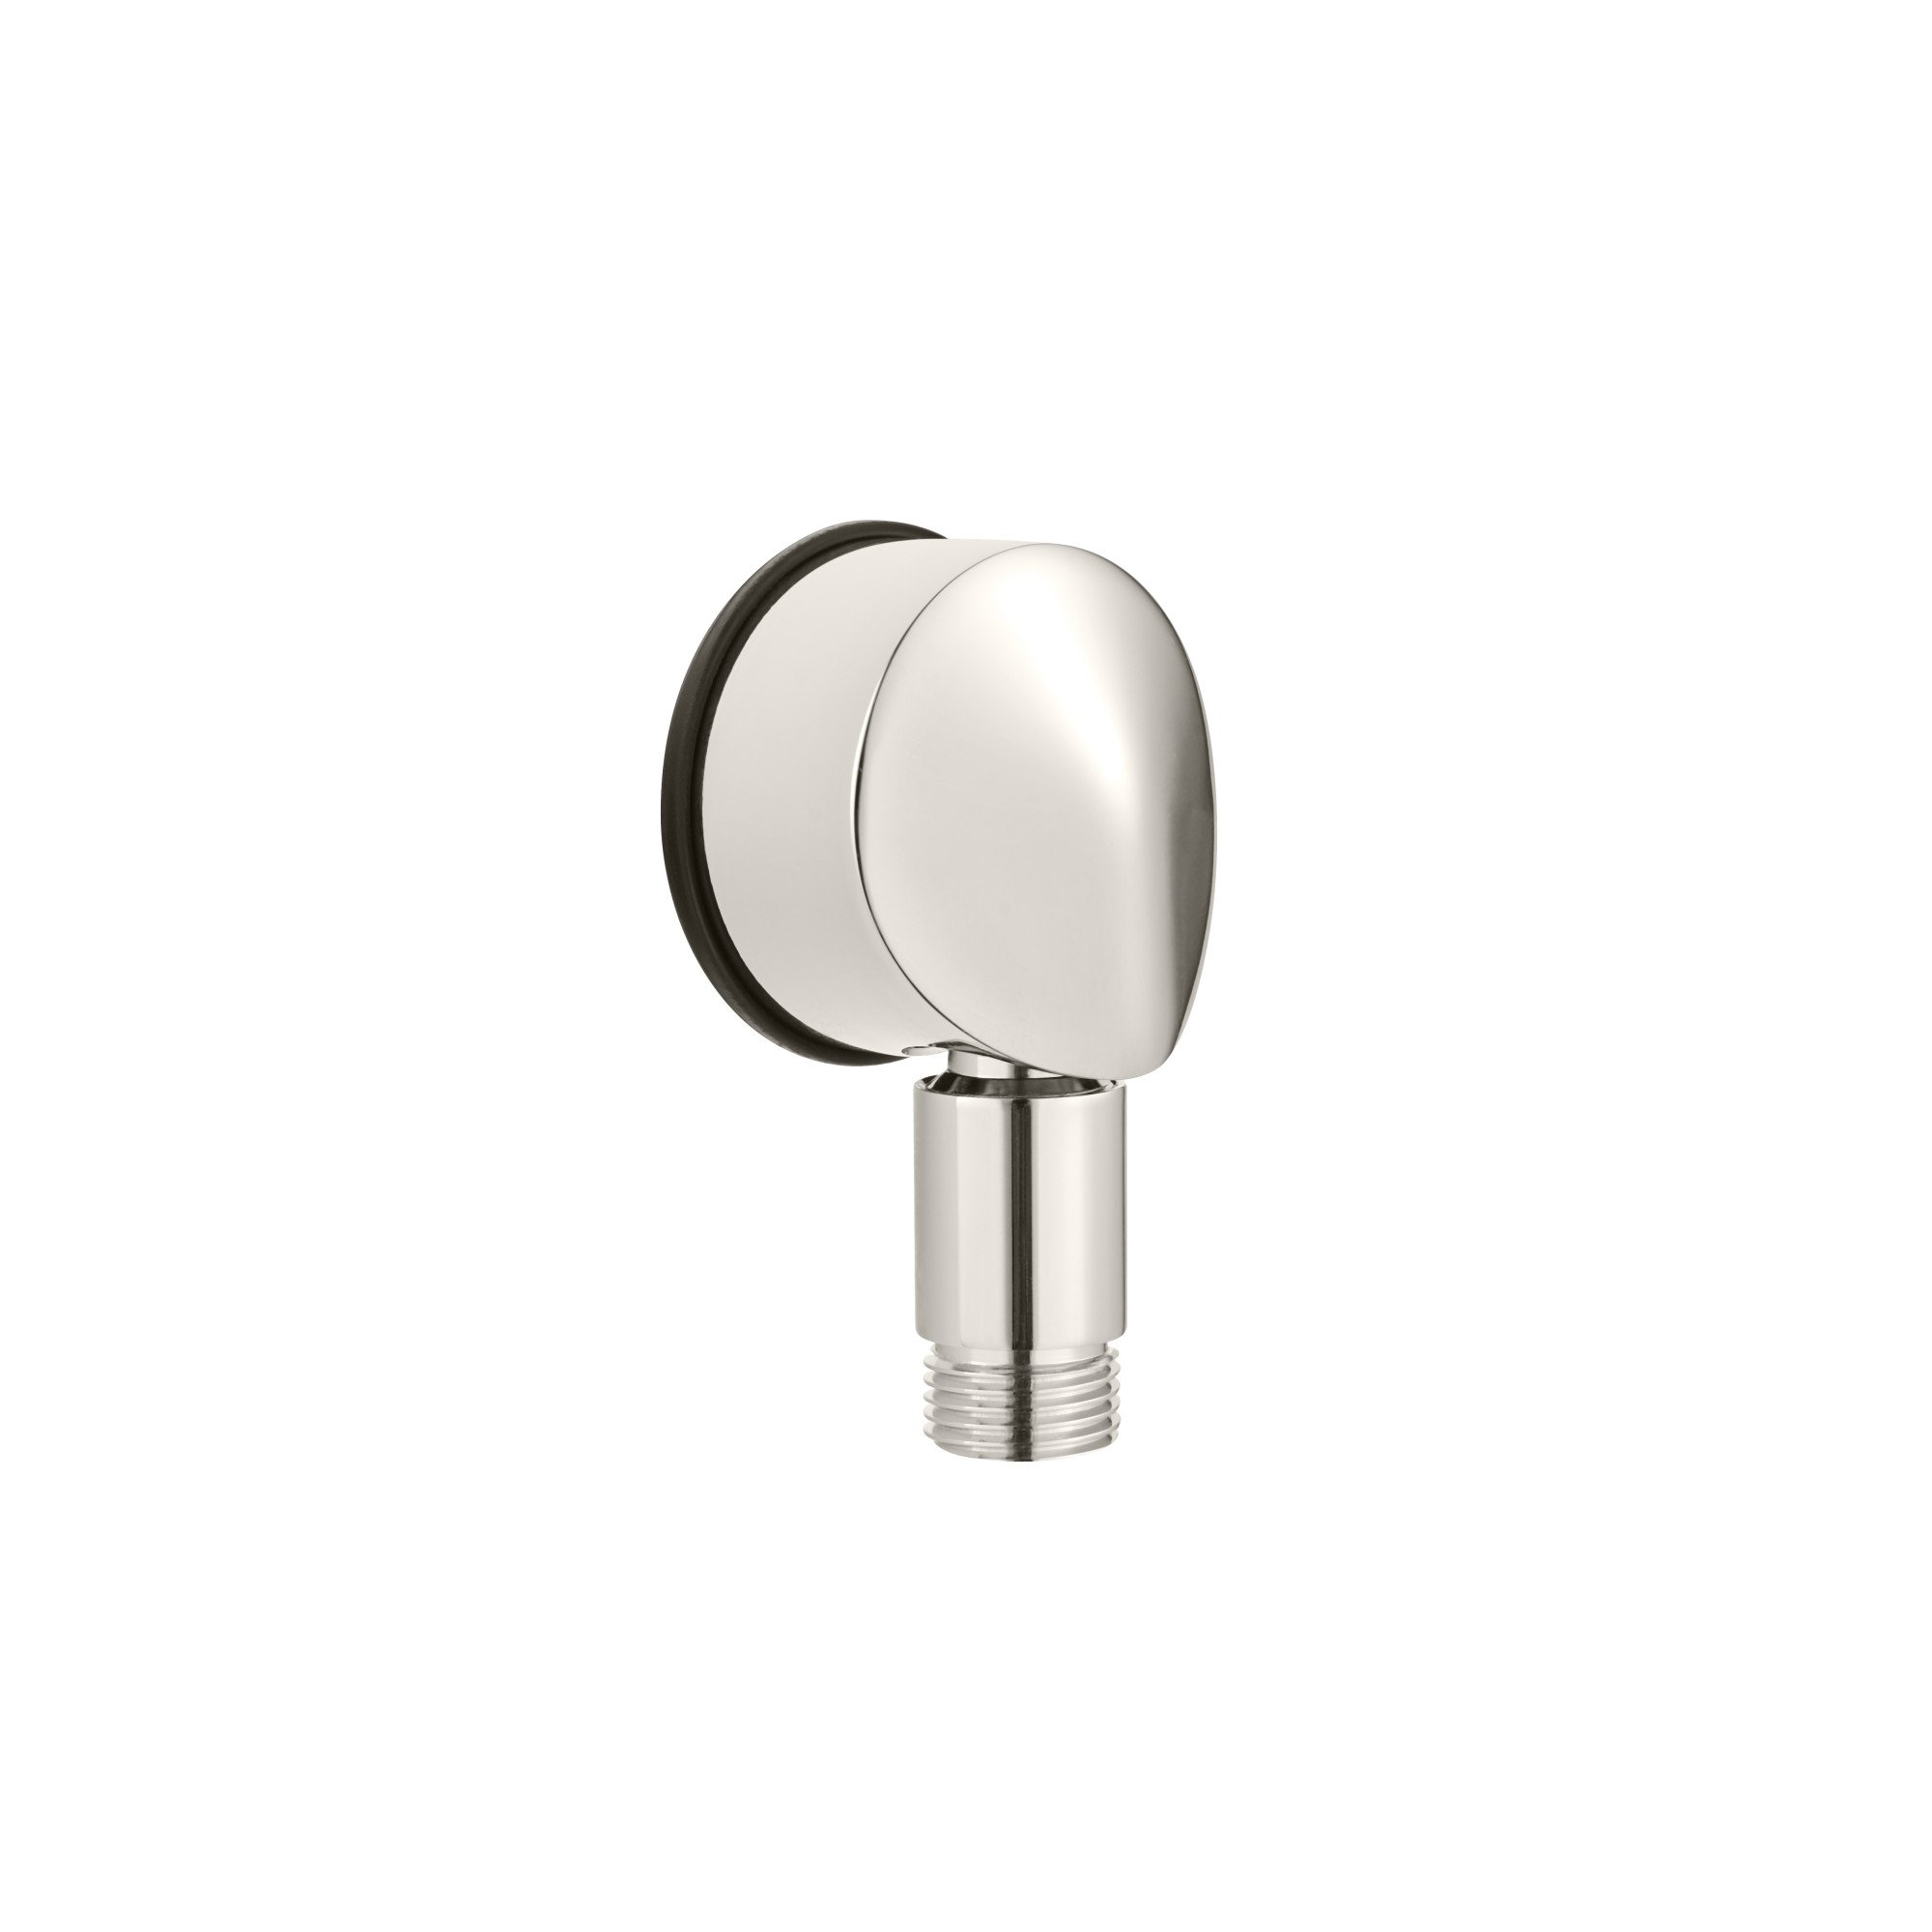 American Standard 8888037.013 Universal/NO Family Wall Supply, Polished Nickel